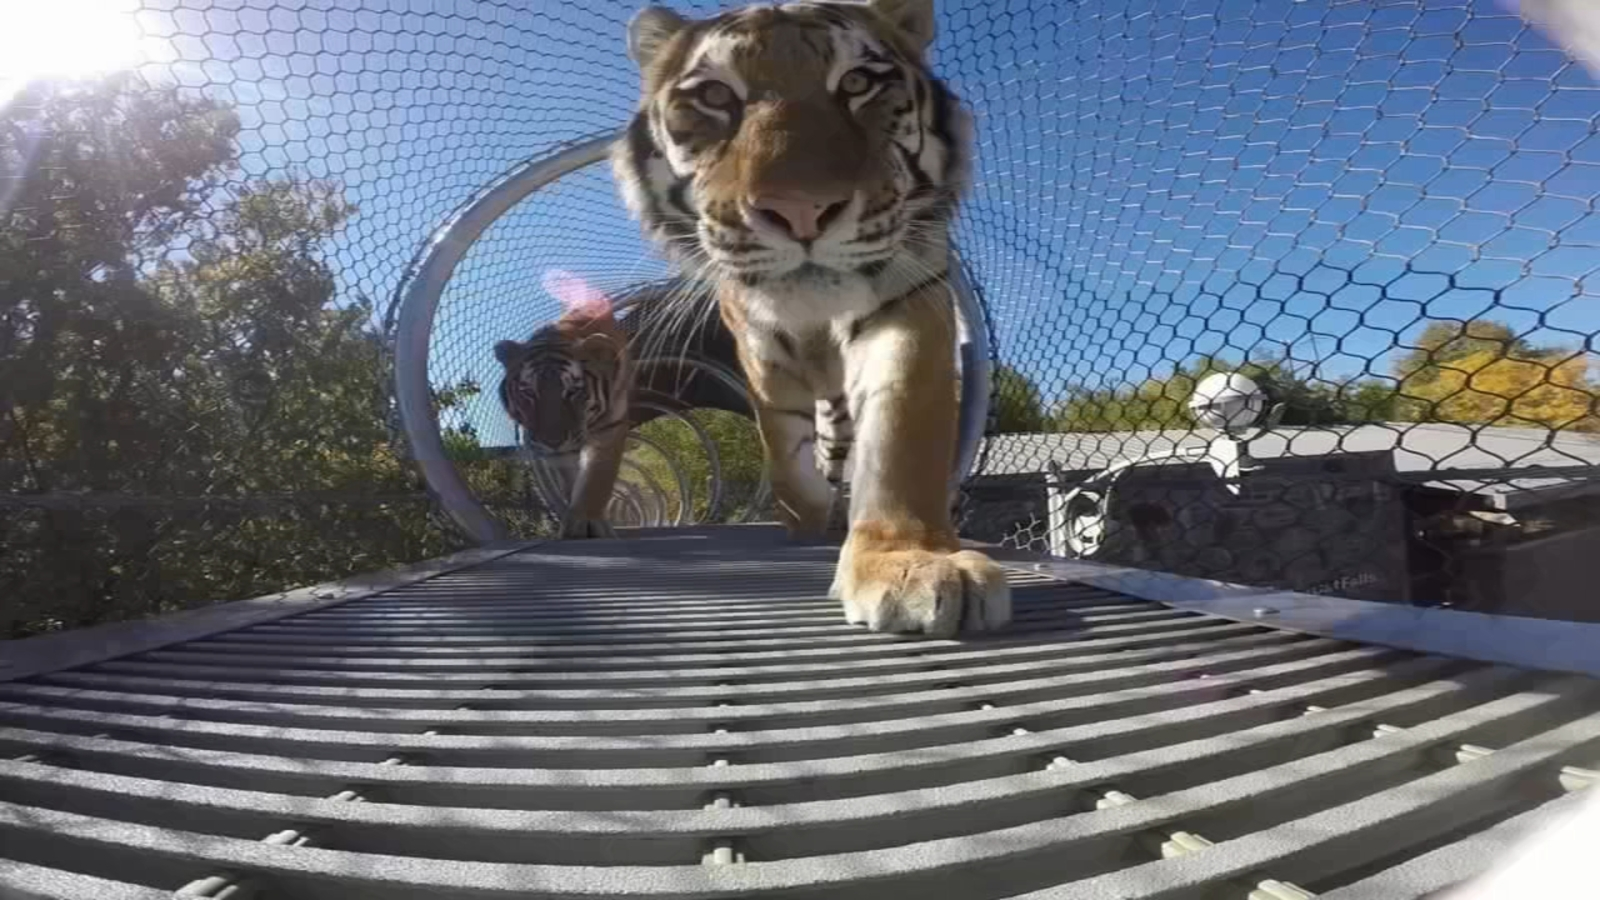 Philadelphia Zoo amplifies precautions after tiger tests positive for COVID-19 at Bronx Zoo